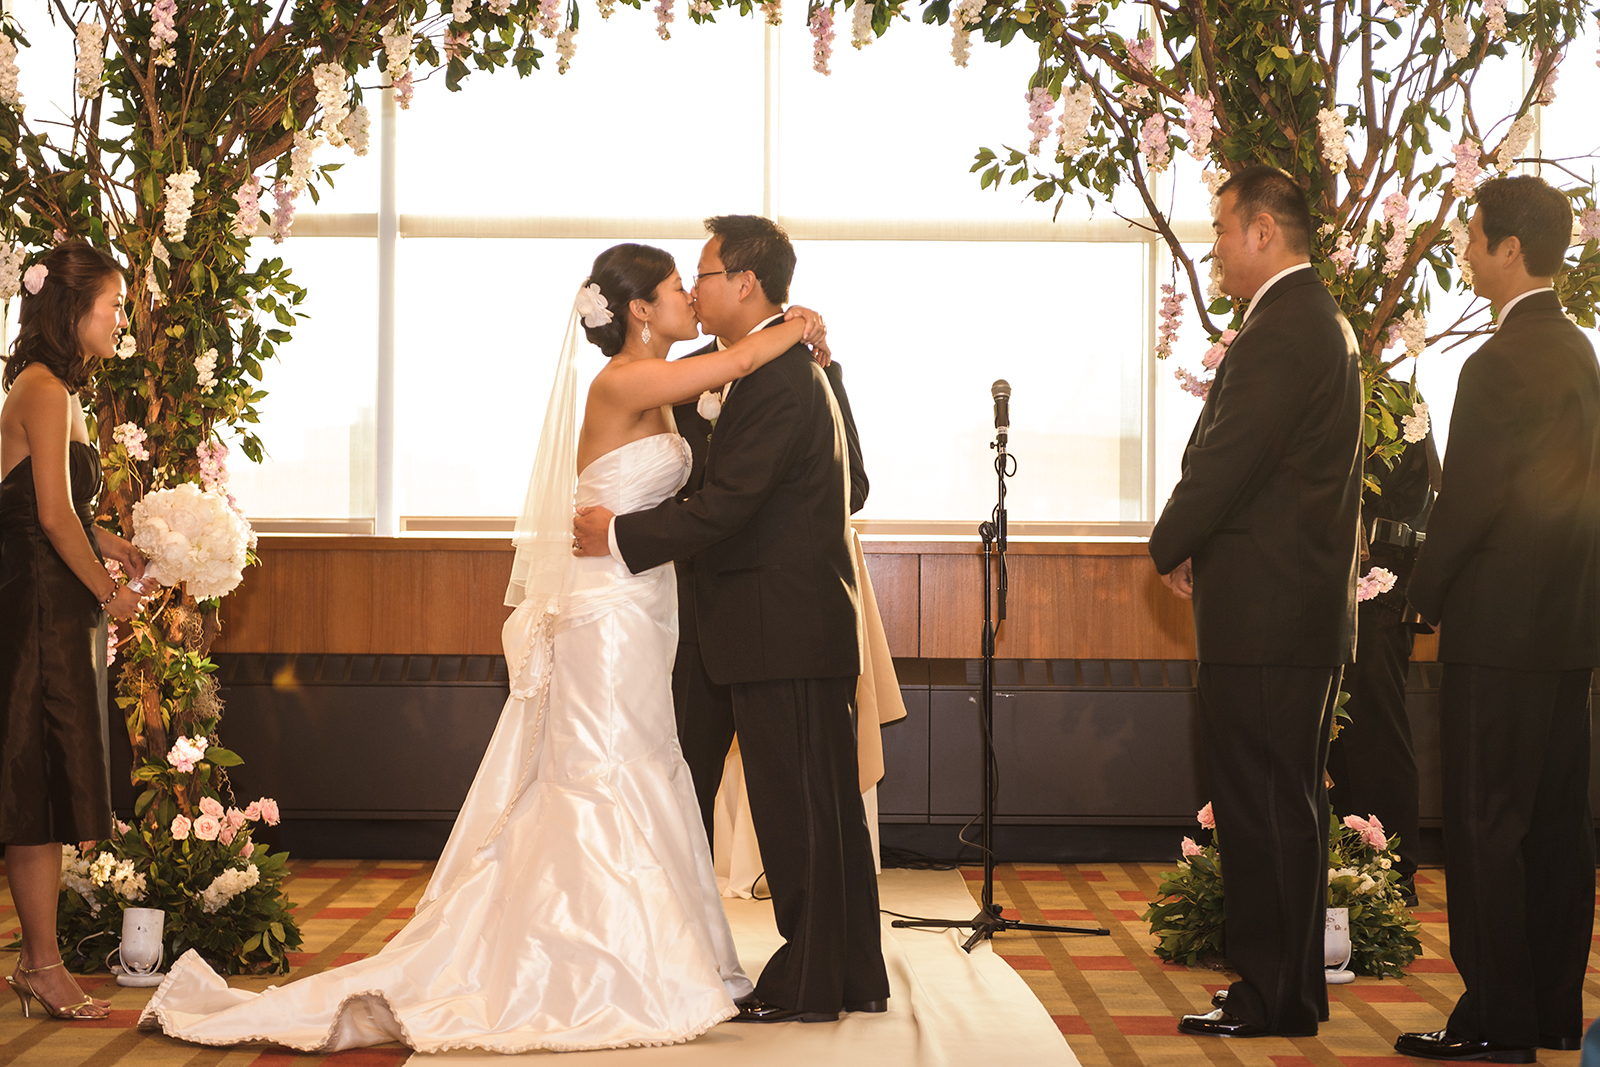 Stage 6 at Steiner Studios Wedding in Brooklyn, NY first kiss